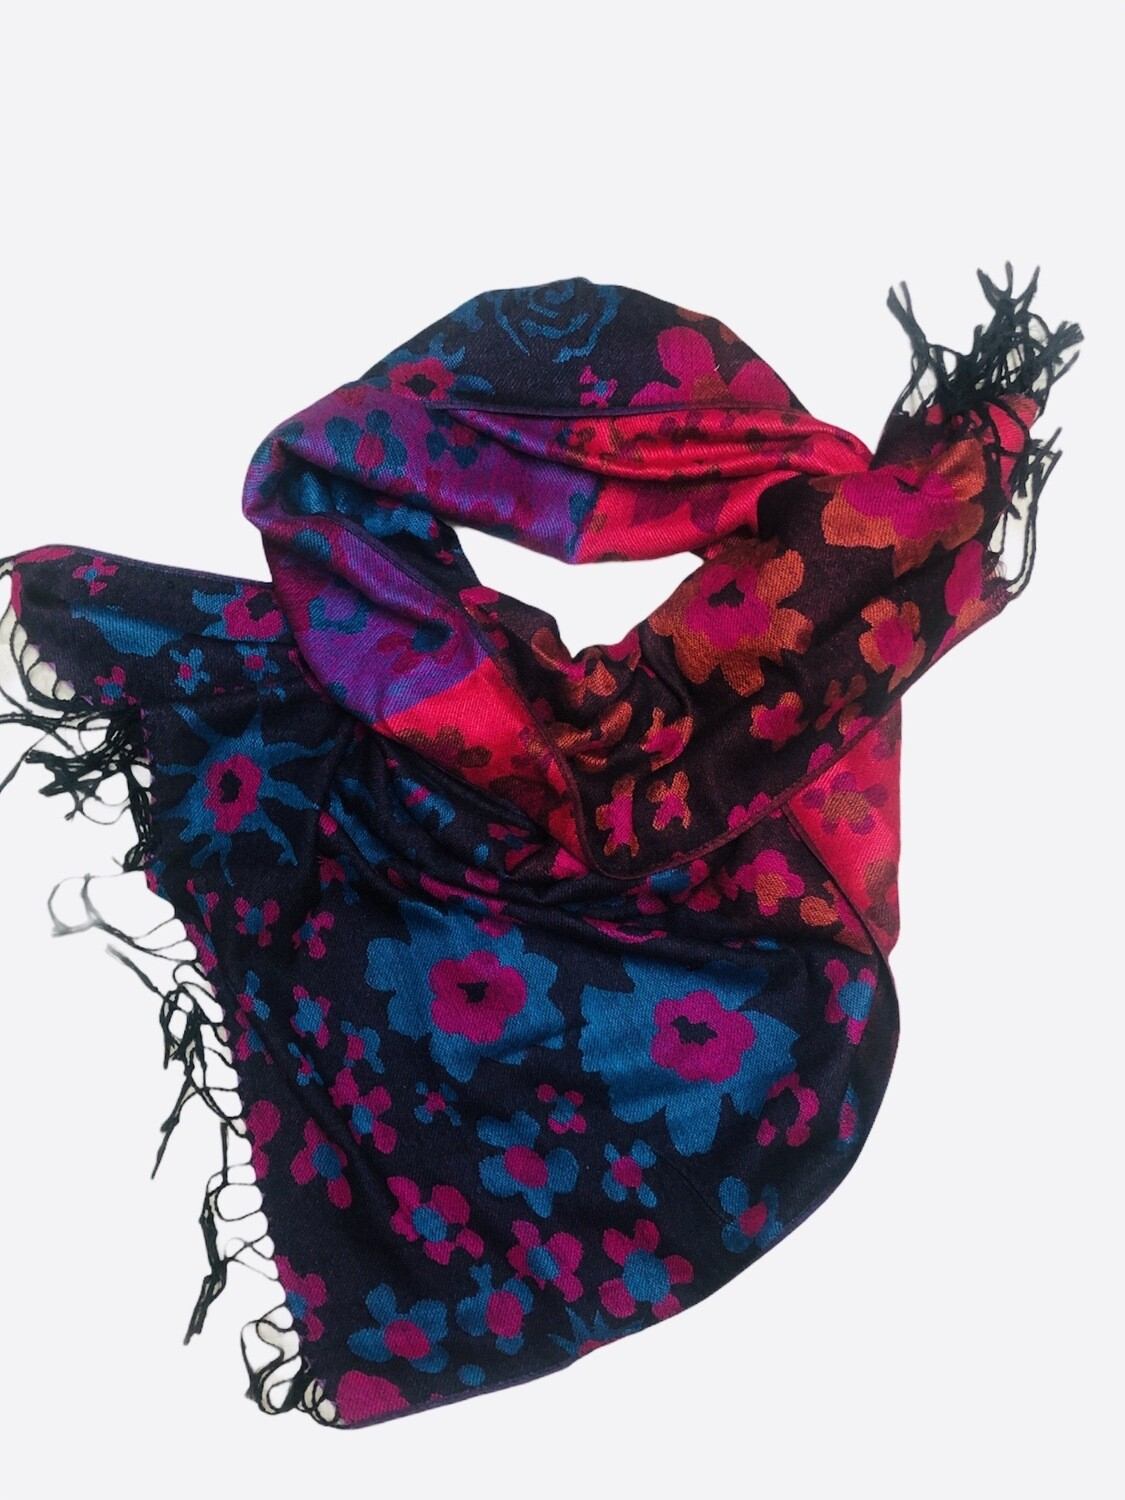 Multi Color Floral Pashmina Shawl Scarf